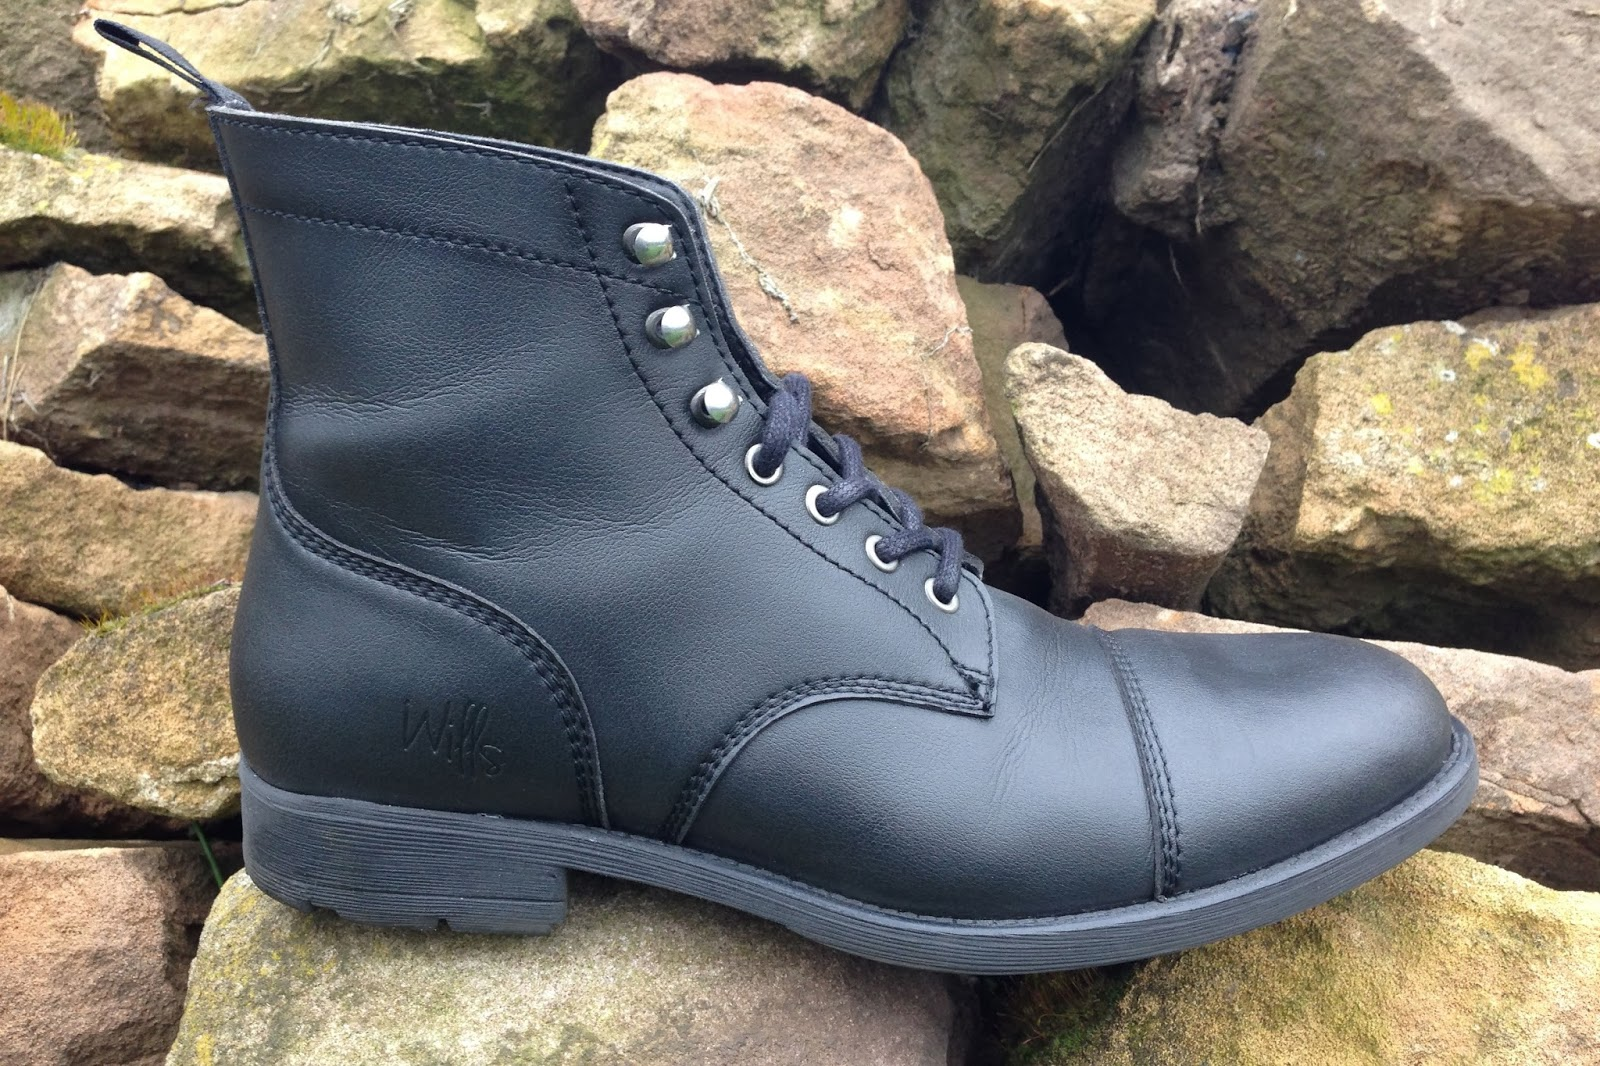 Wills Vegan Shoes - Work Boots